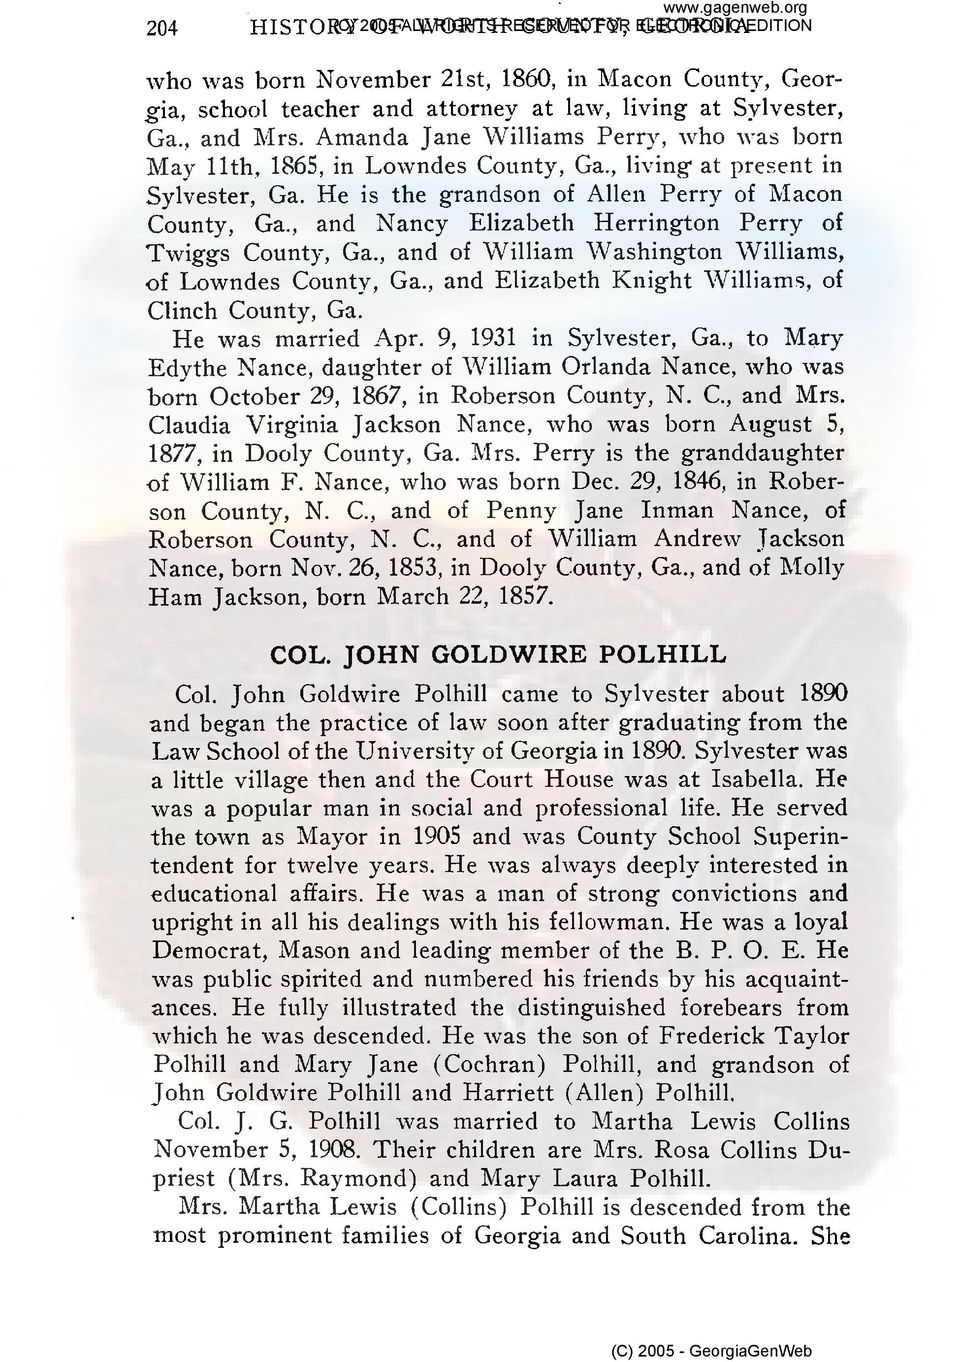 , and Nancy Elizabeth Herrington Perry of Twiggs County, Ga., and of William Washington Williams, of Lowndes County, Ga., and Elizabeth Knight Williams. of Clinch County, Ga. He was married -4pr.